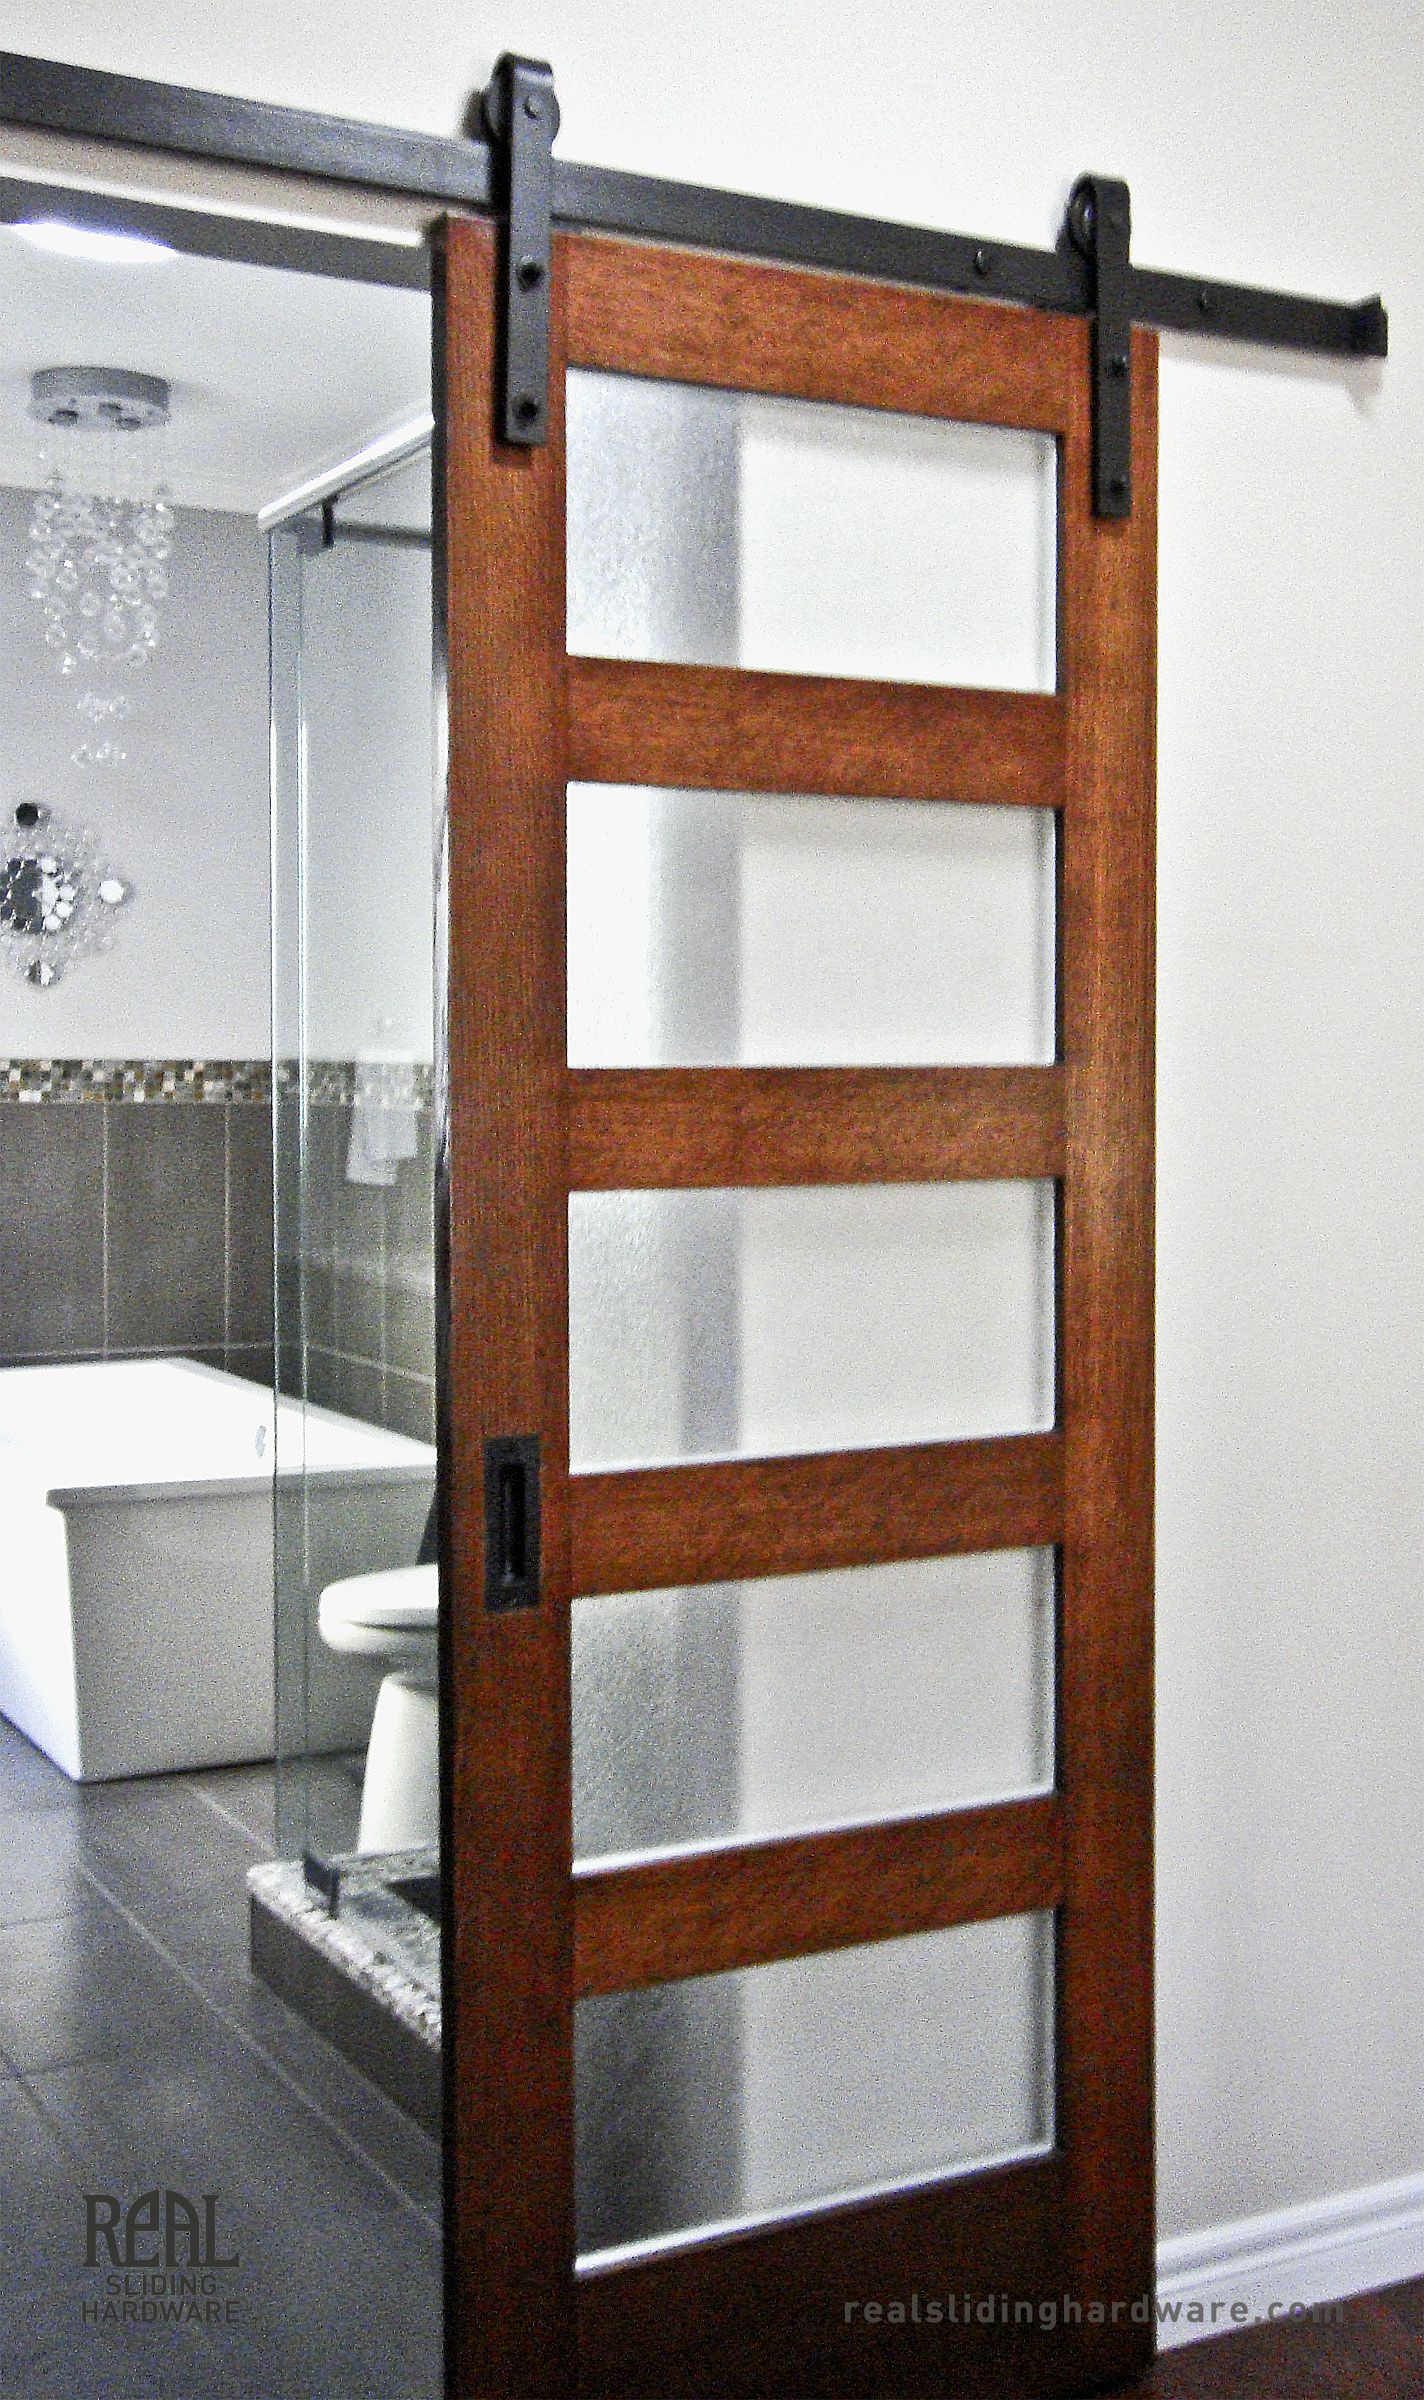 Charmant Master Bathroom Sliding Barn Door... This Is The Master Bathroom Divider  For The